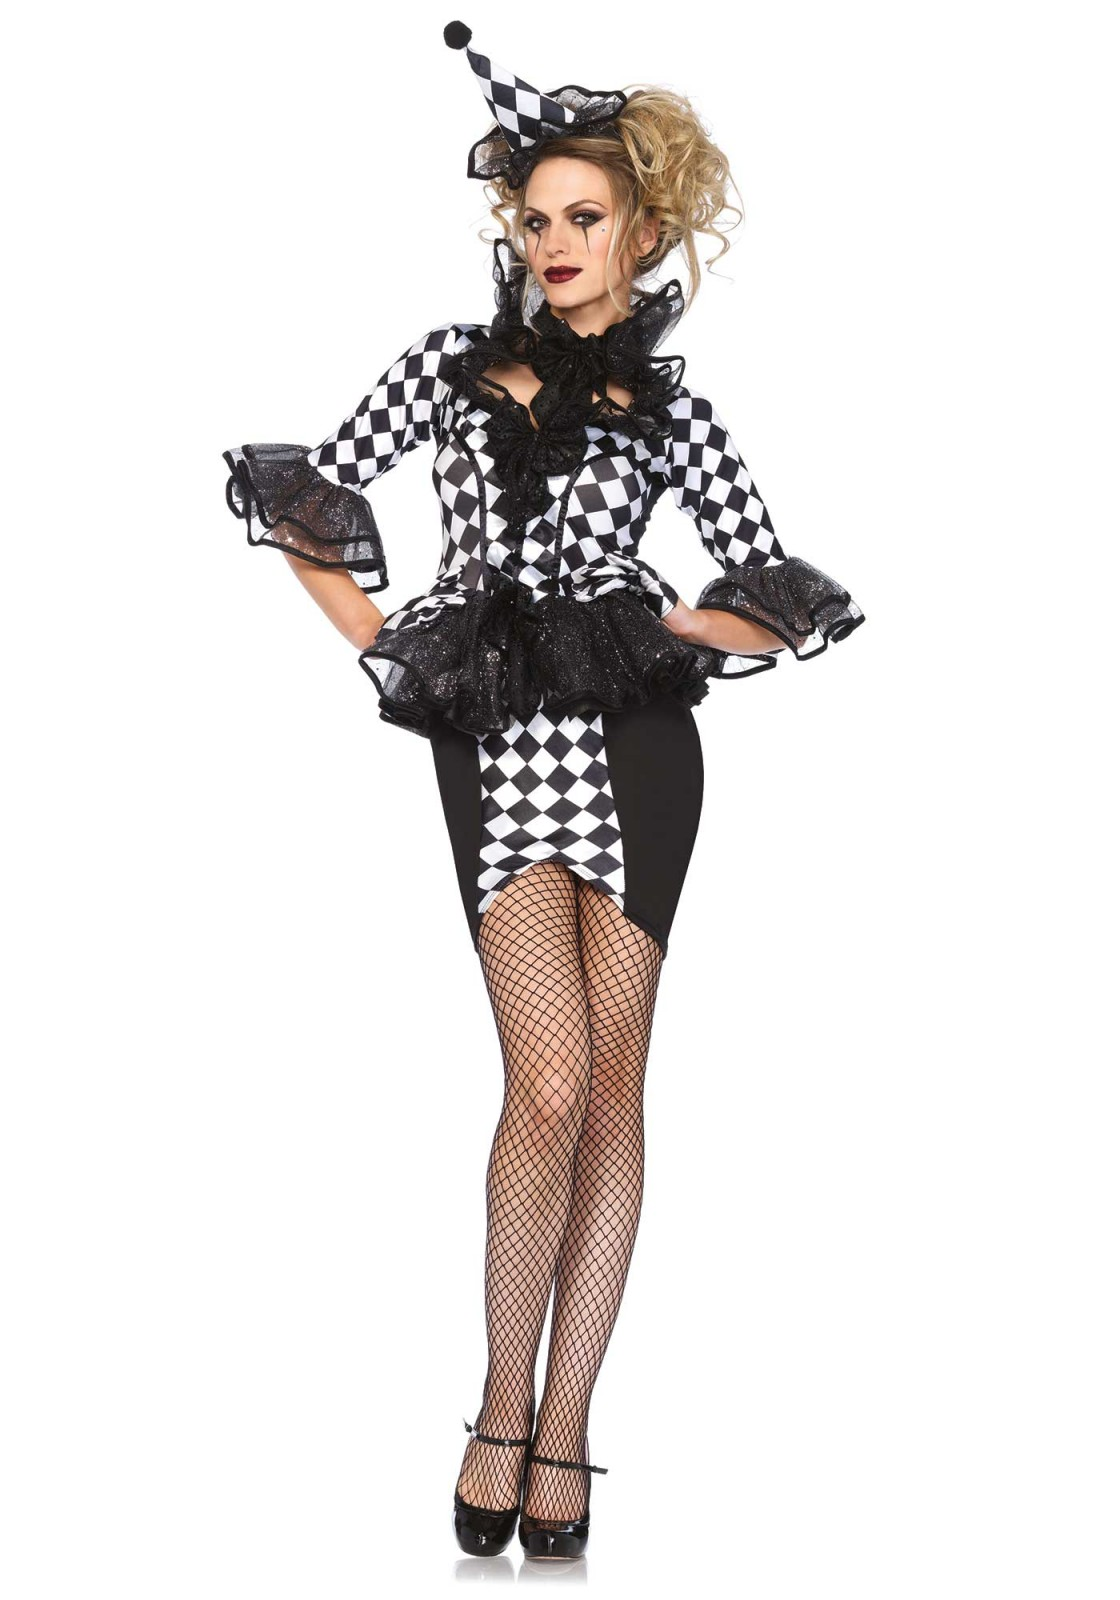 Of course you are the spiciest act of the circus. Without a doubt. This 3PC circus costume includes a dress with glitter peplum skirt and ruffle stay up collar, bow choker and matching hat. Please take note that the gloves and pantyhose are not included. The length of size Small, measured from the shoulder is 94cm / 37inch. The model has a length of 178 cm/ 70 inch and is wearing a size S.